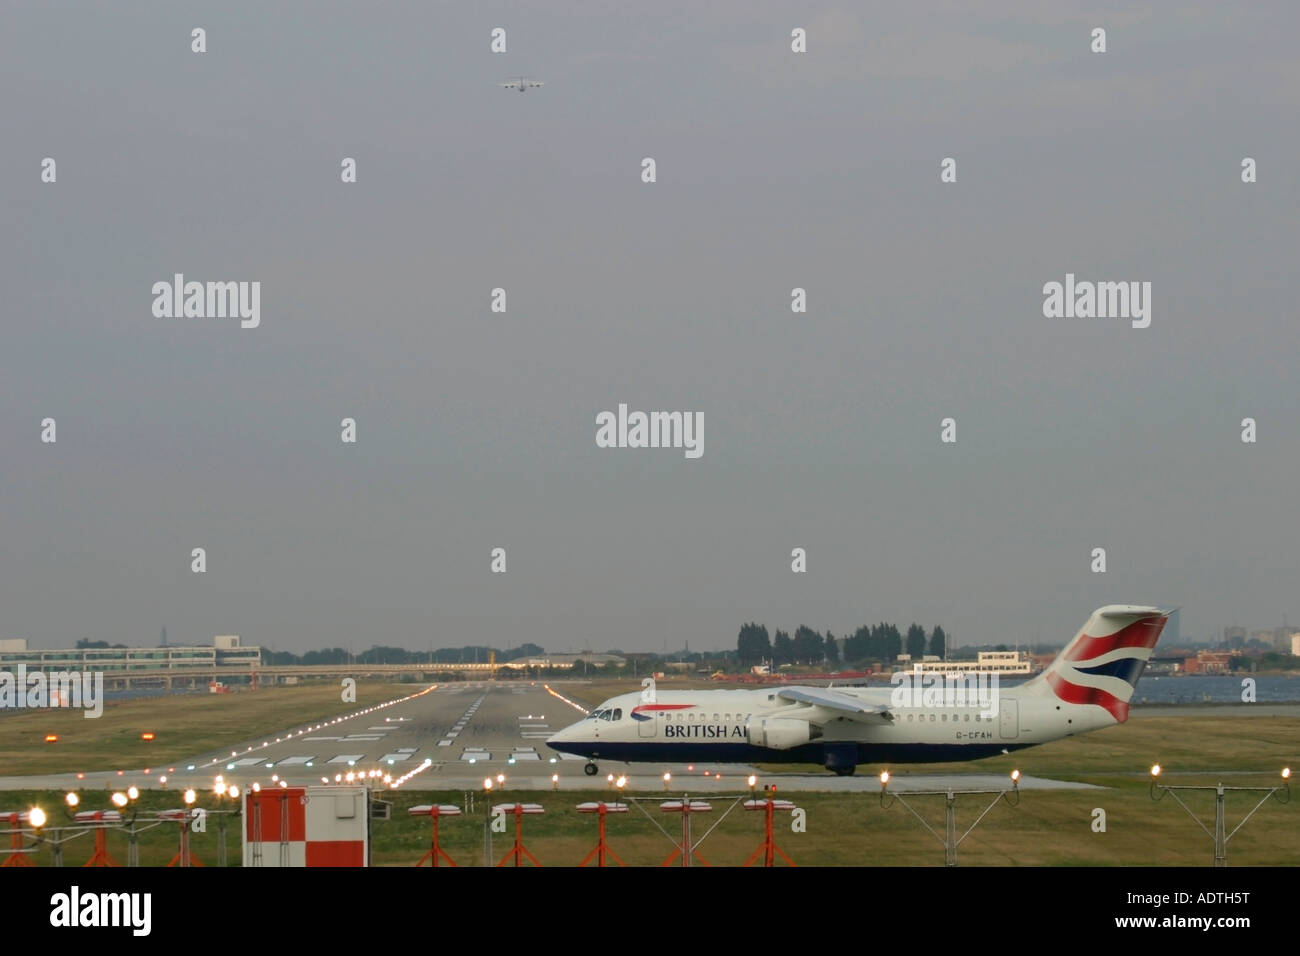 British Airways BAE Systems Avro 146-RJ100 taxiing for departure at London City Airport, England, UK. - Stock Image